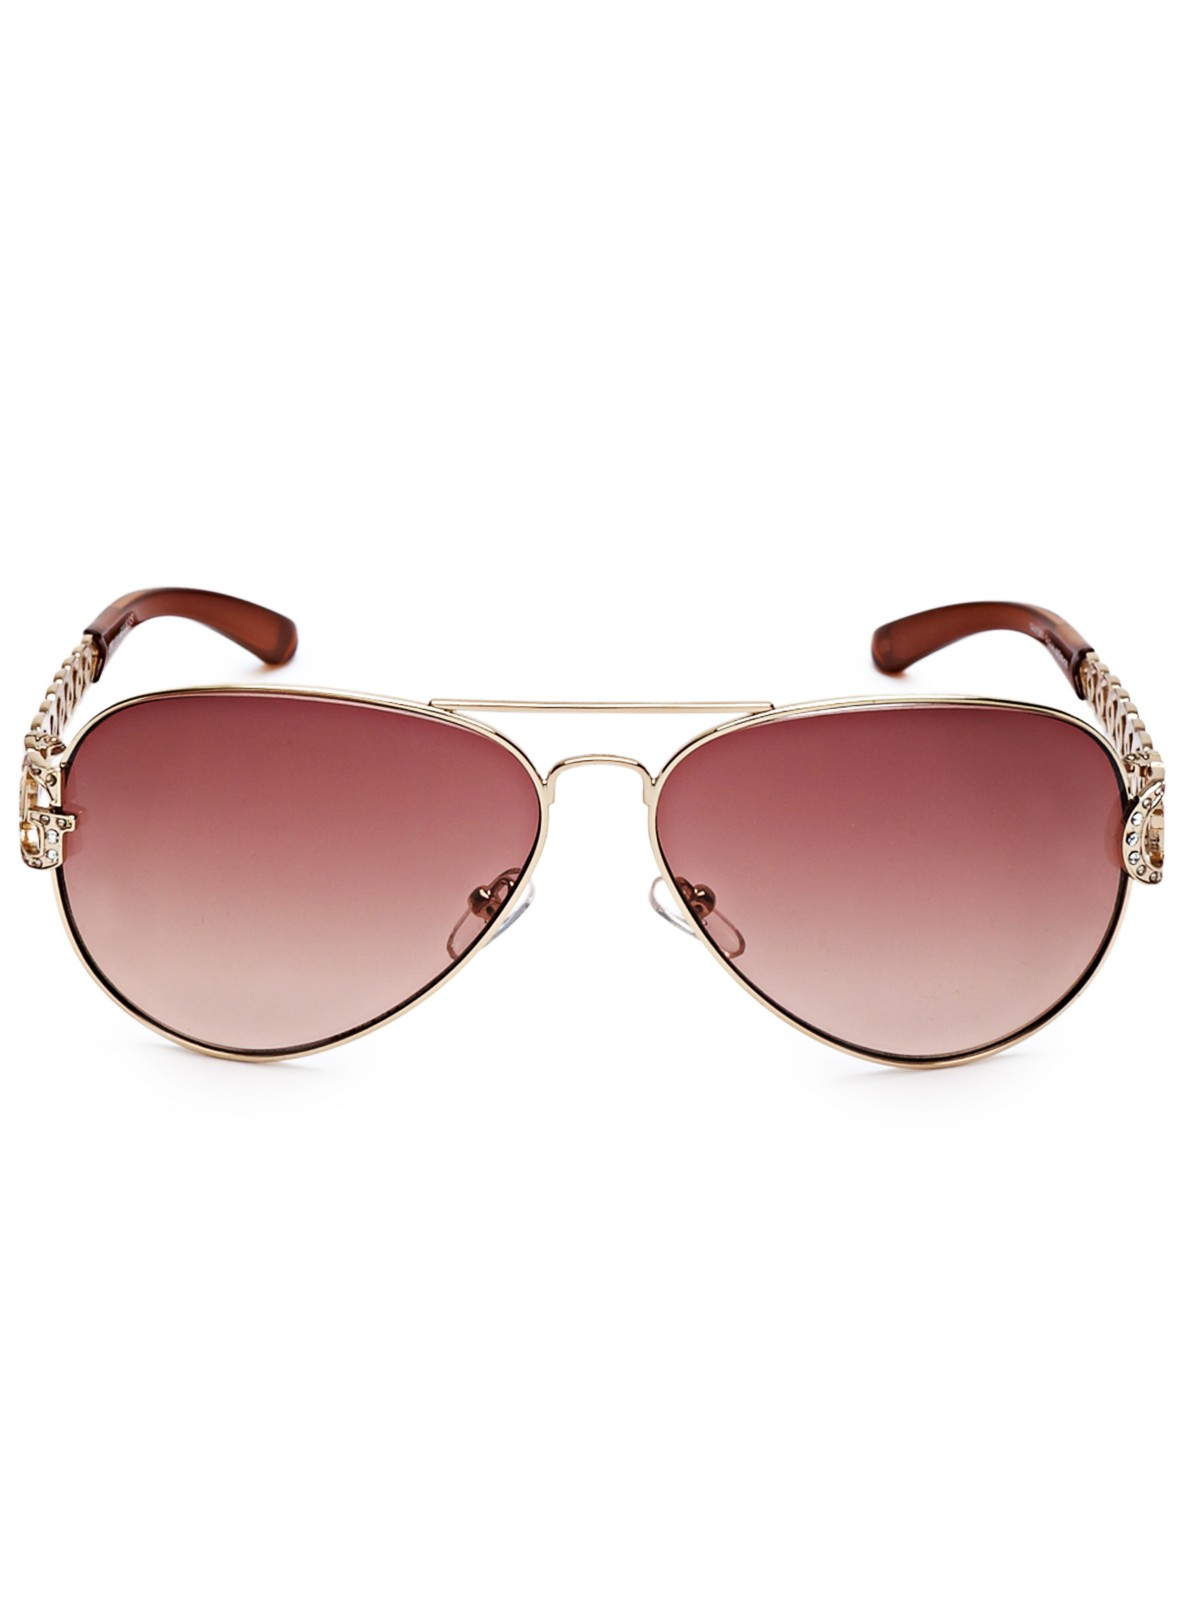 1e67173e9c2b G By Guess Aviator Sunglasses Gold. Jun20. Elderly friends. G By Guess  Aviator Sunglasses